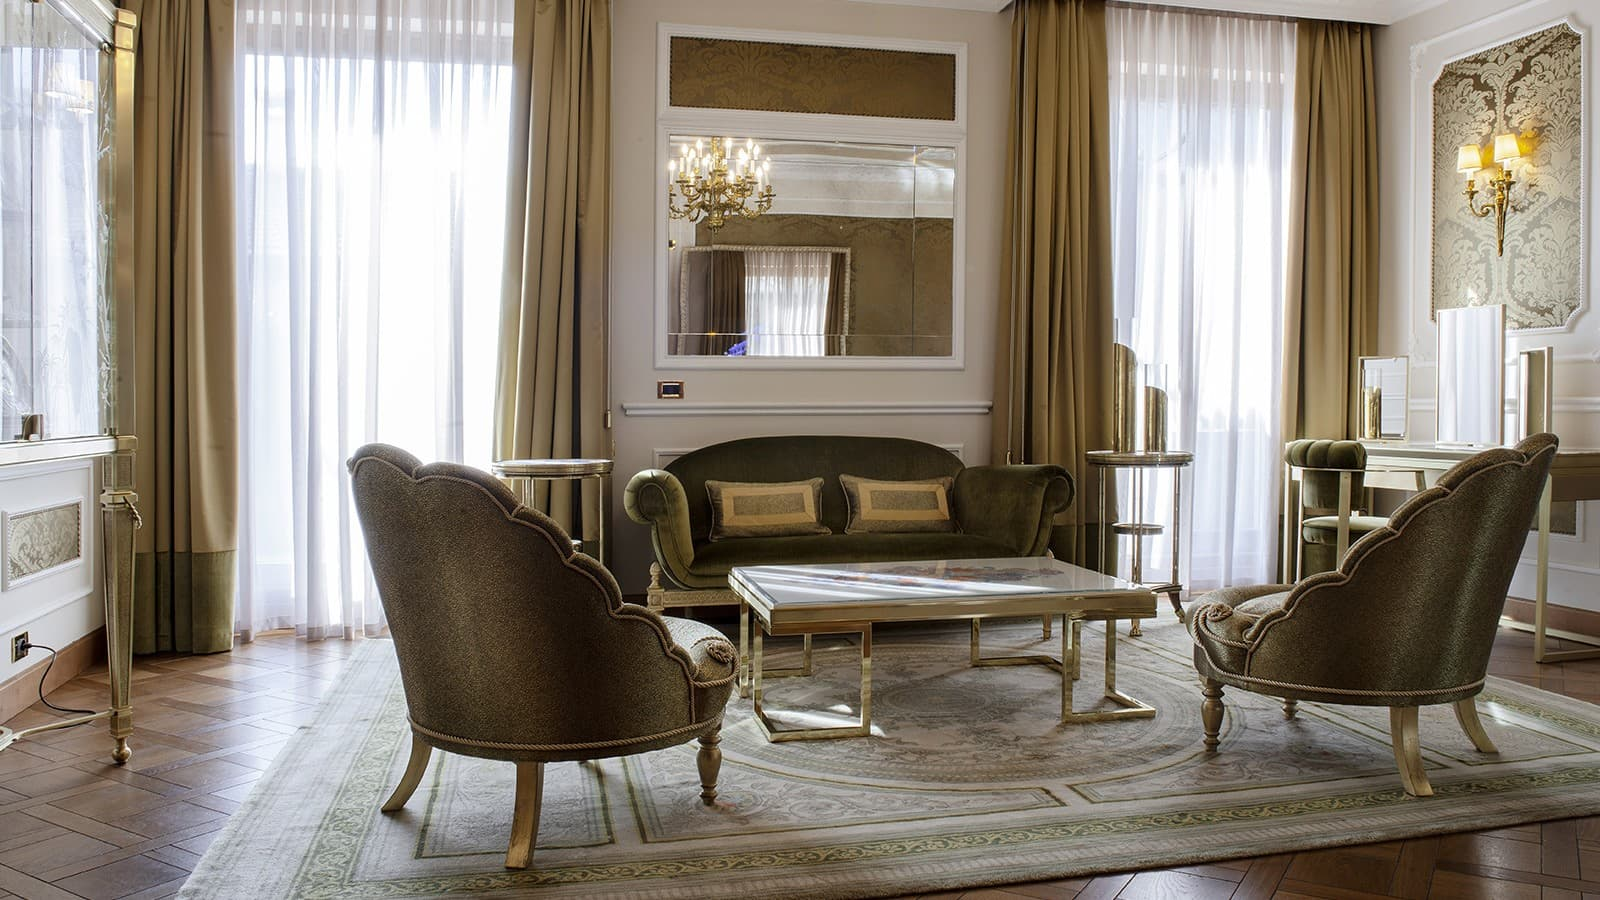 New Montenapoleone Suite living room by Jumbo Collection Baglioni Hotel Carlton Milan